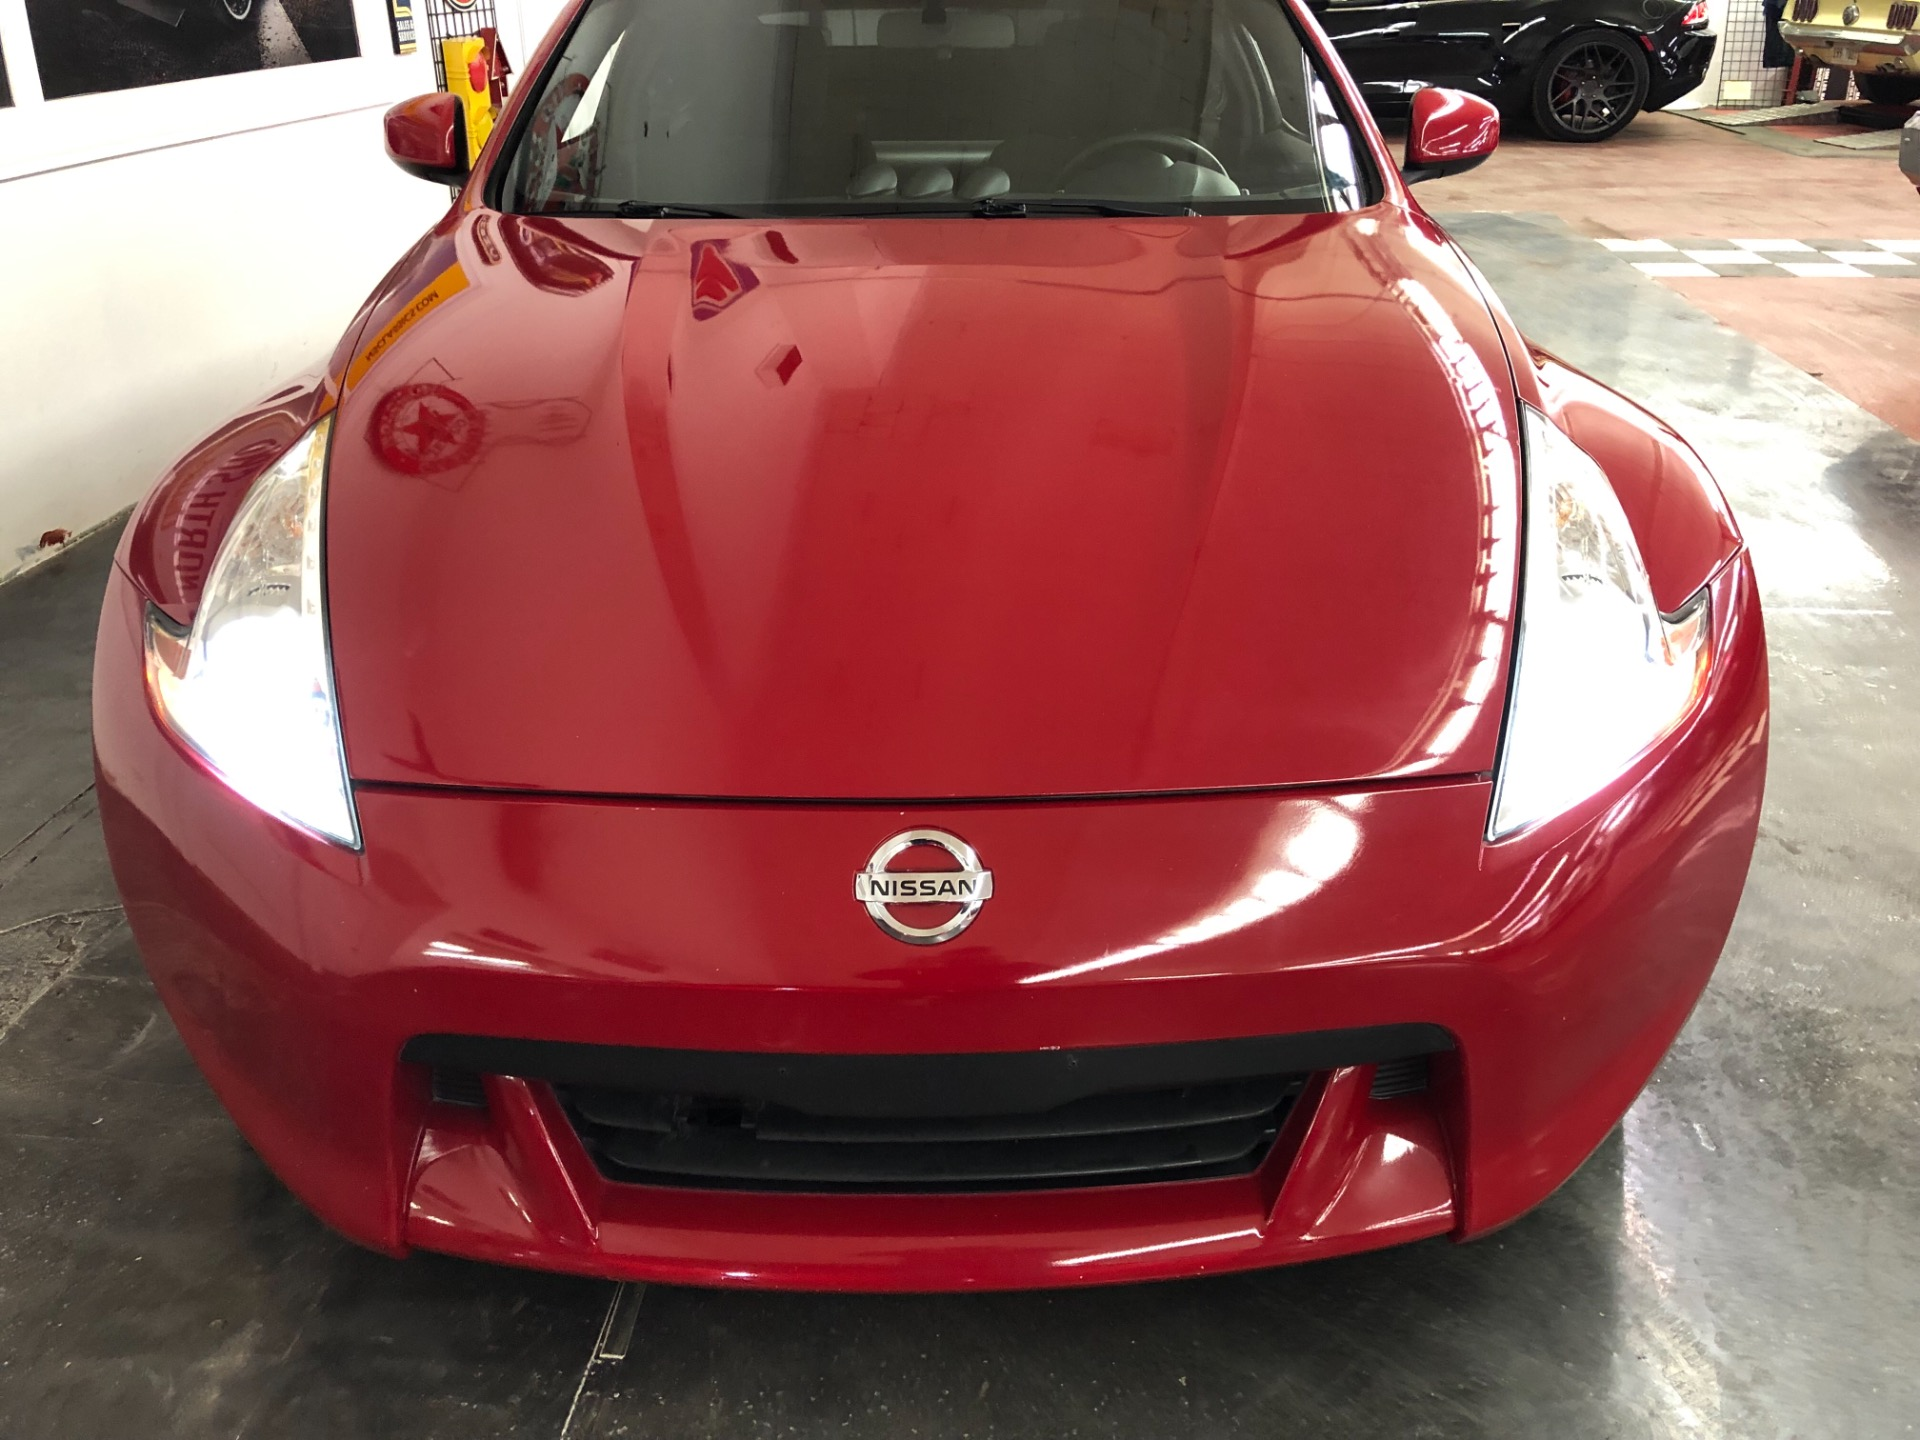 Used 2011 Nissan 370Z -TOURING-2dr COUPE-3.7L-6 SPEED MANUAL-ITS READY FOR YOU-VIDEO | Mundelein, IL